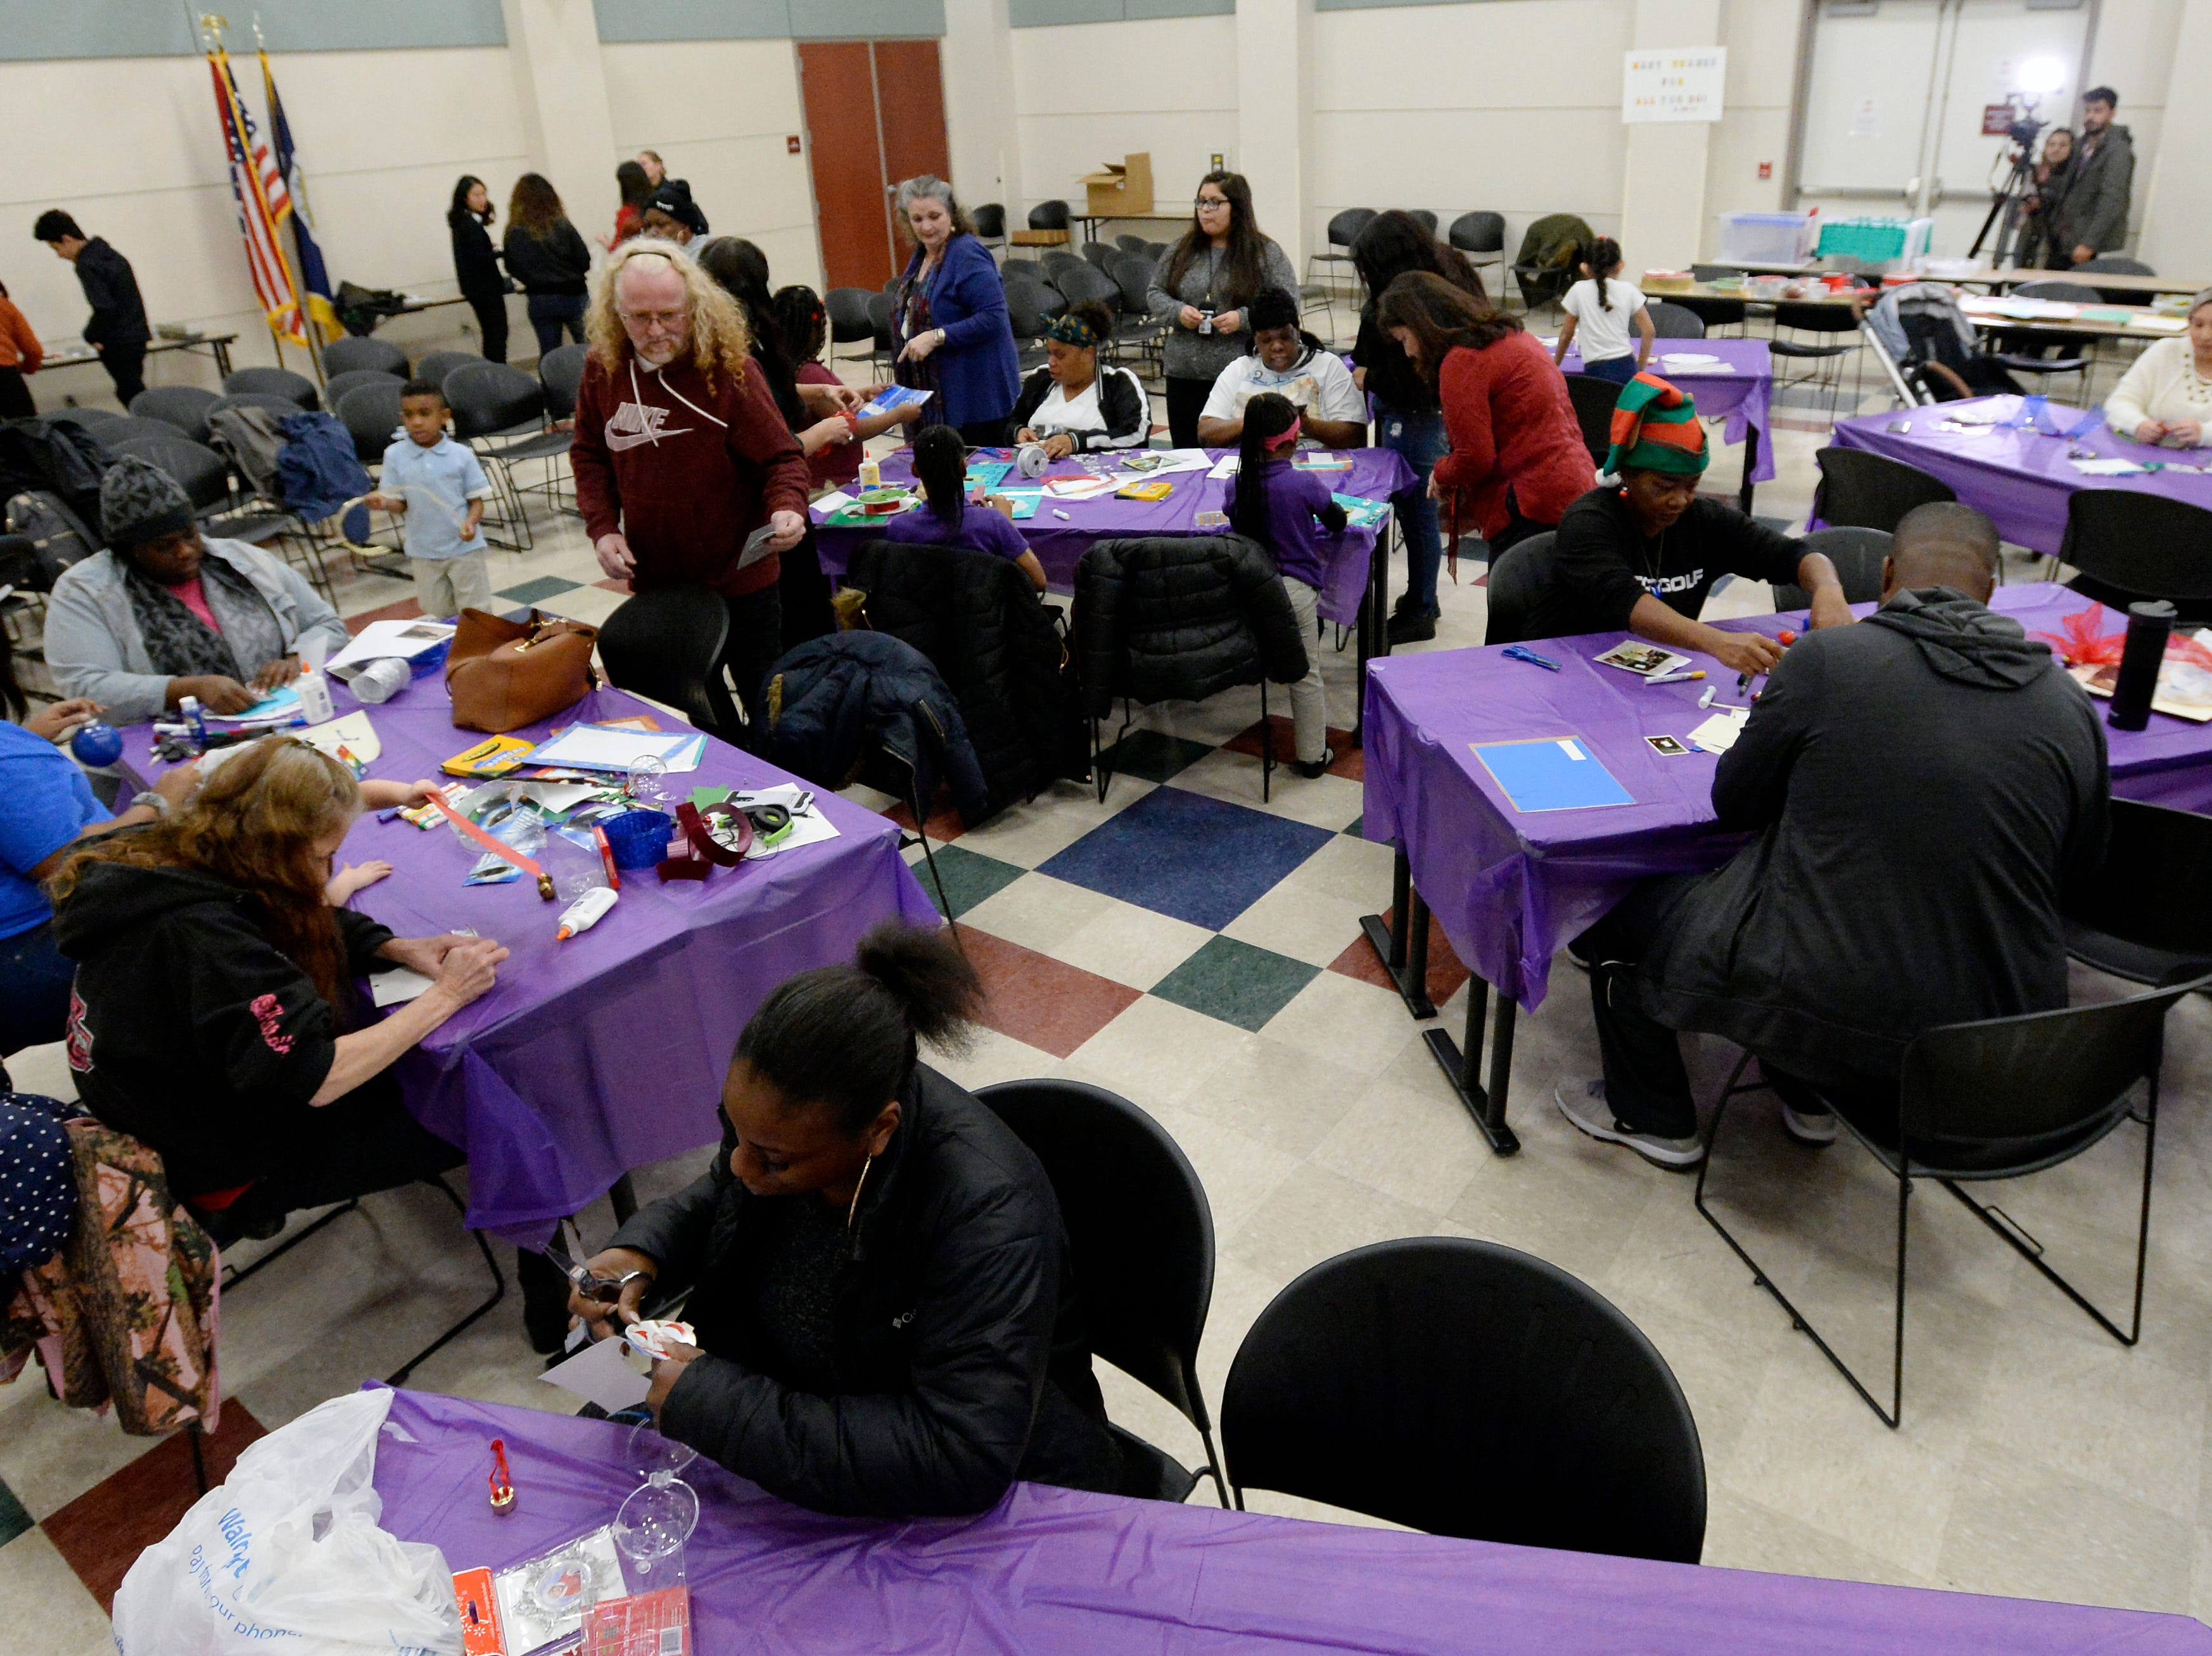 Families who have lost loved ones in homicides make memorial Christmas ornaments at the Metro Police Department's North Precinct on Tuesday, Dec. 11, 2018, in Nashville, Tenn. The Victim Intervention Program is a community outreach program through the police department.